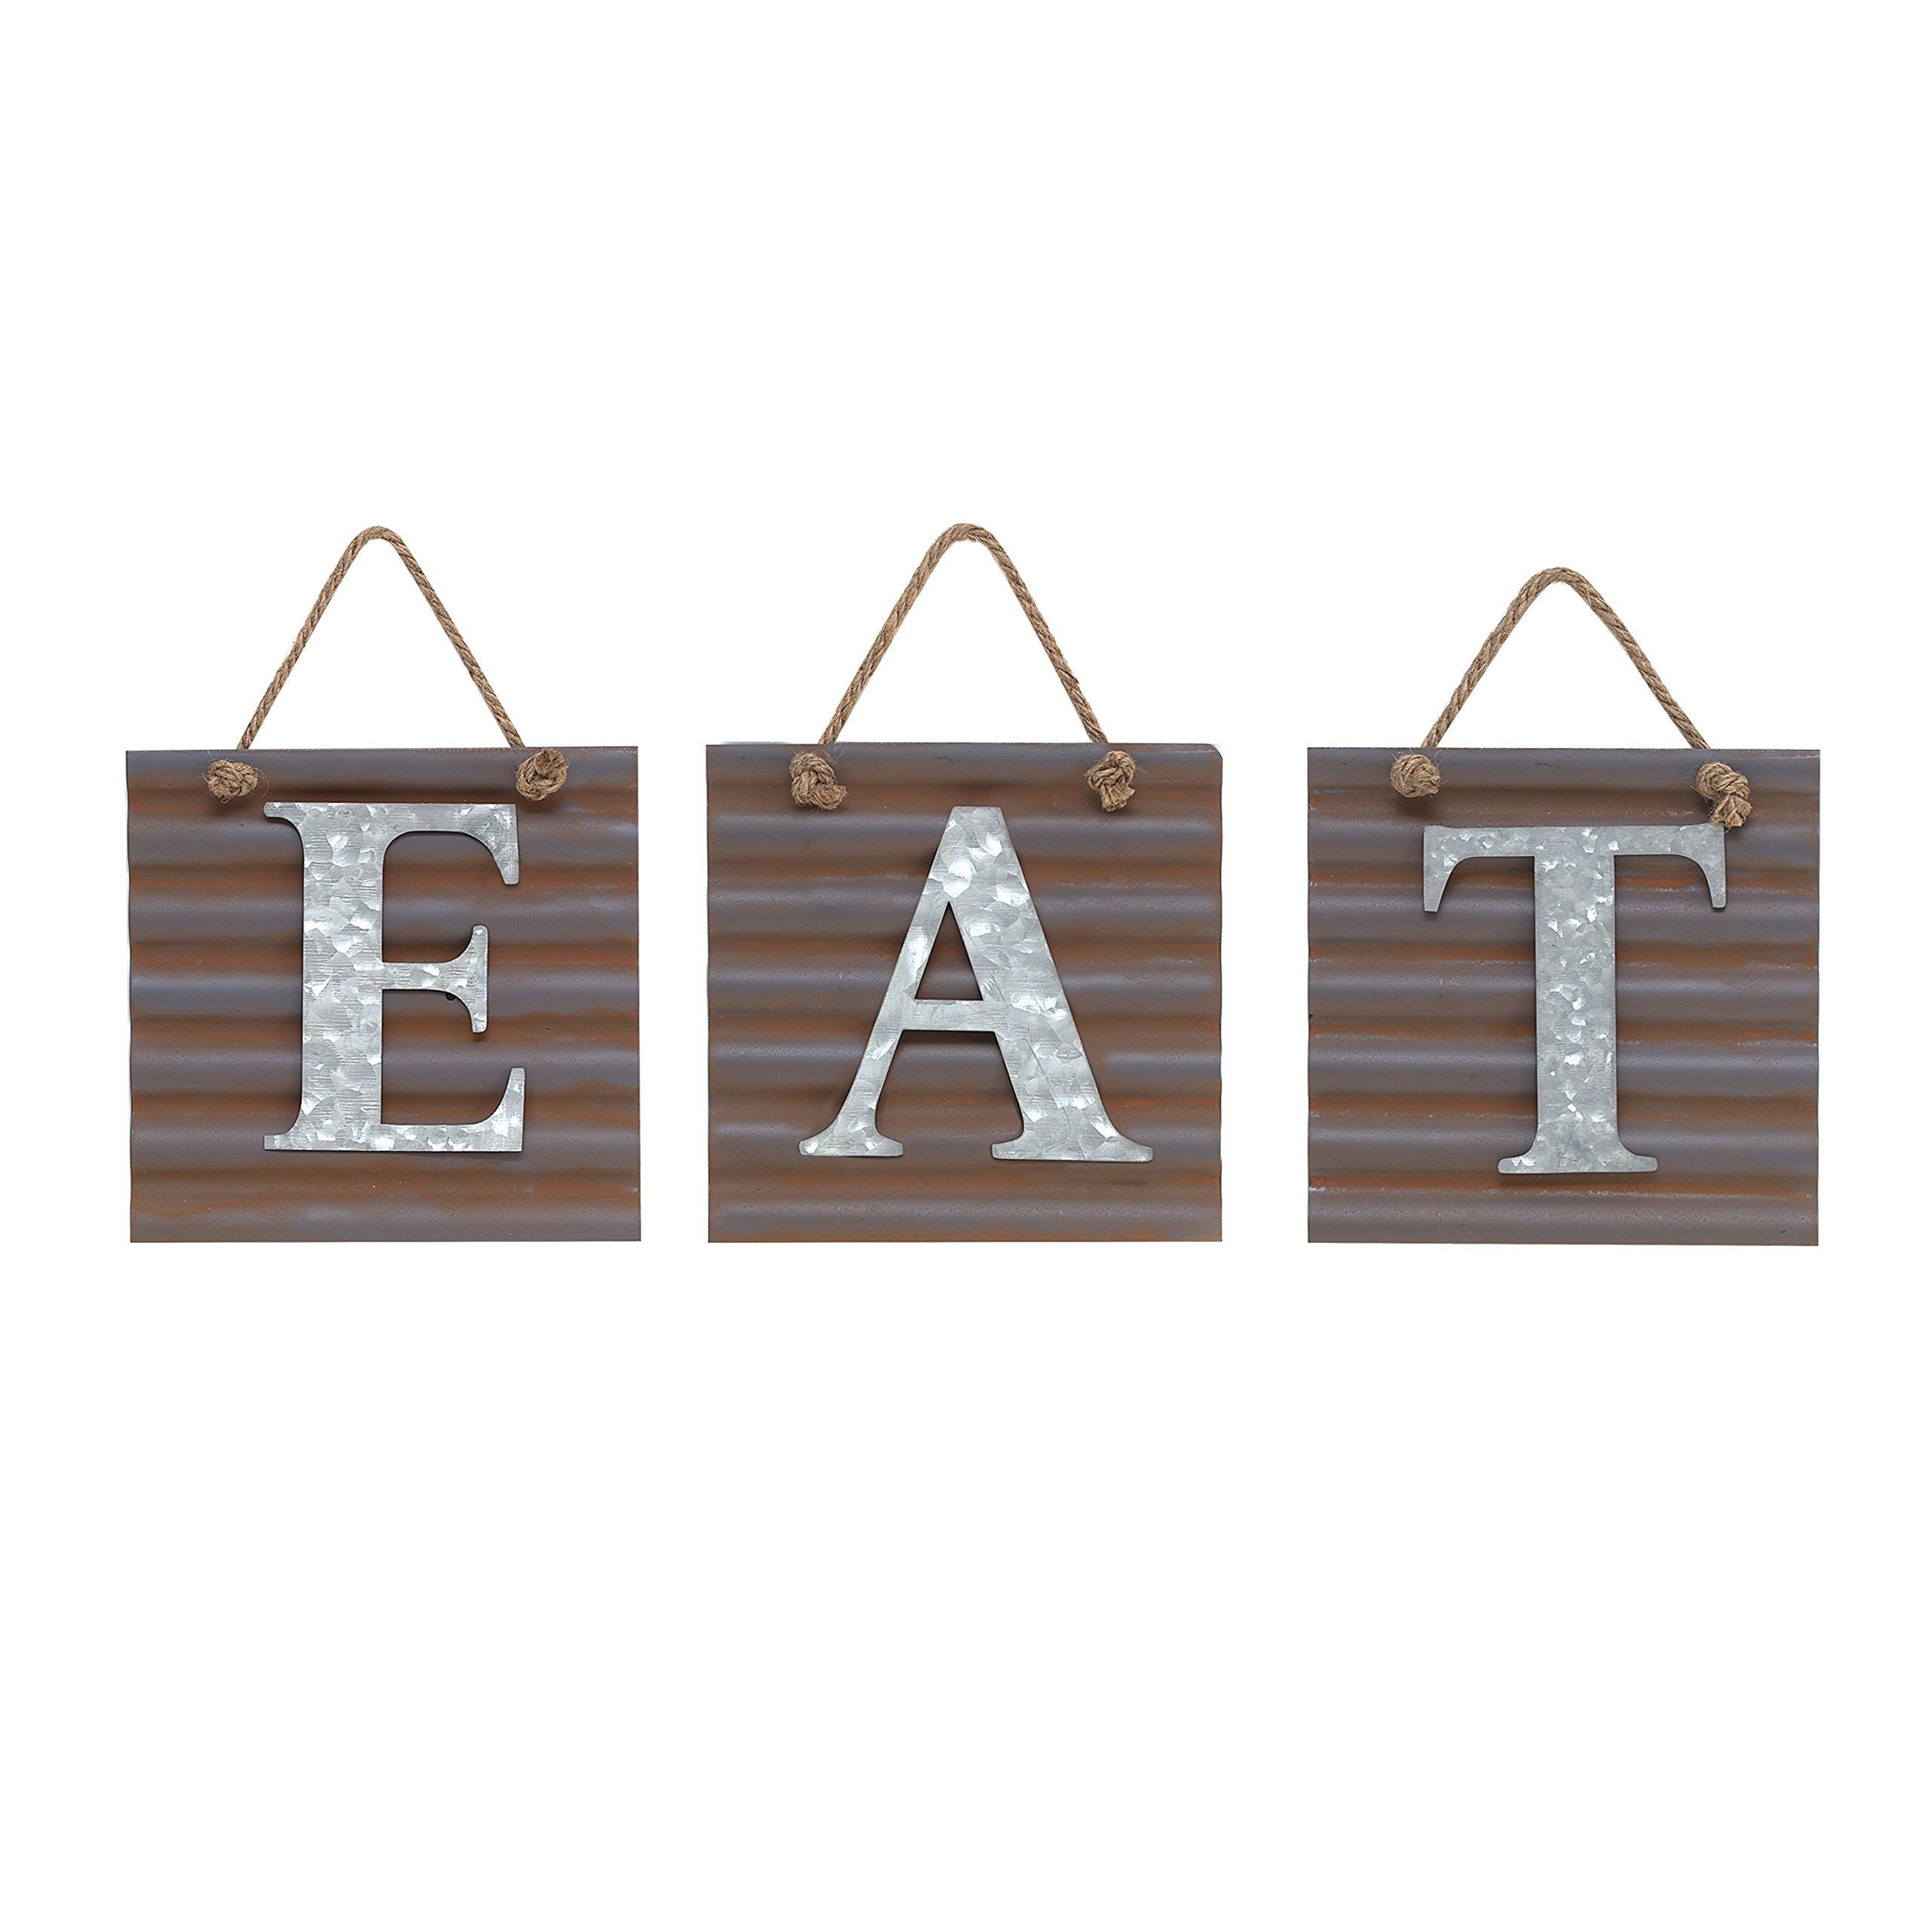 Barnyard Designs Eat Galvanized Metal Letter Tile Wall Sign, Primitive Country Rustic Kitchen Farmhouse Home Decor Sign 28'' x 10''